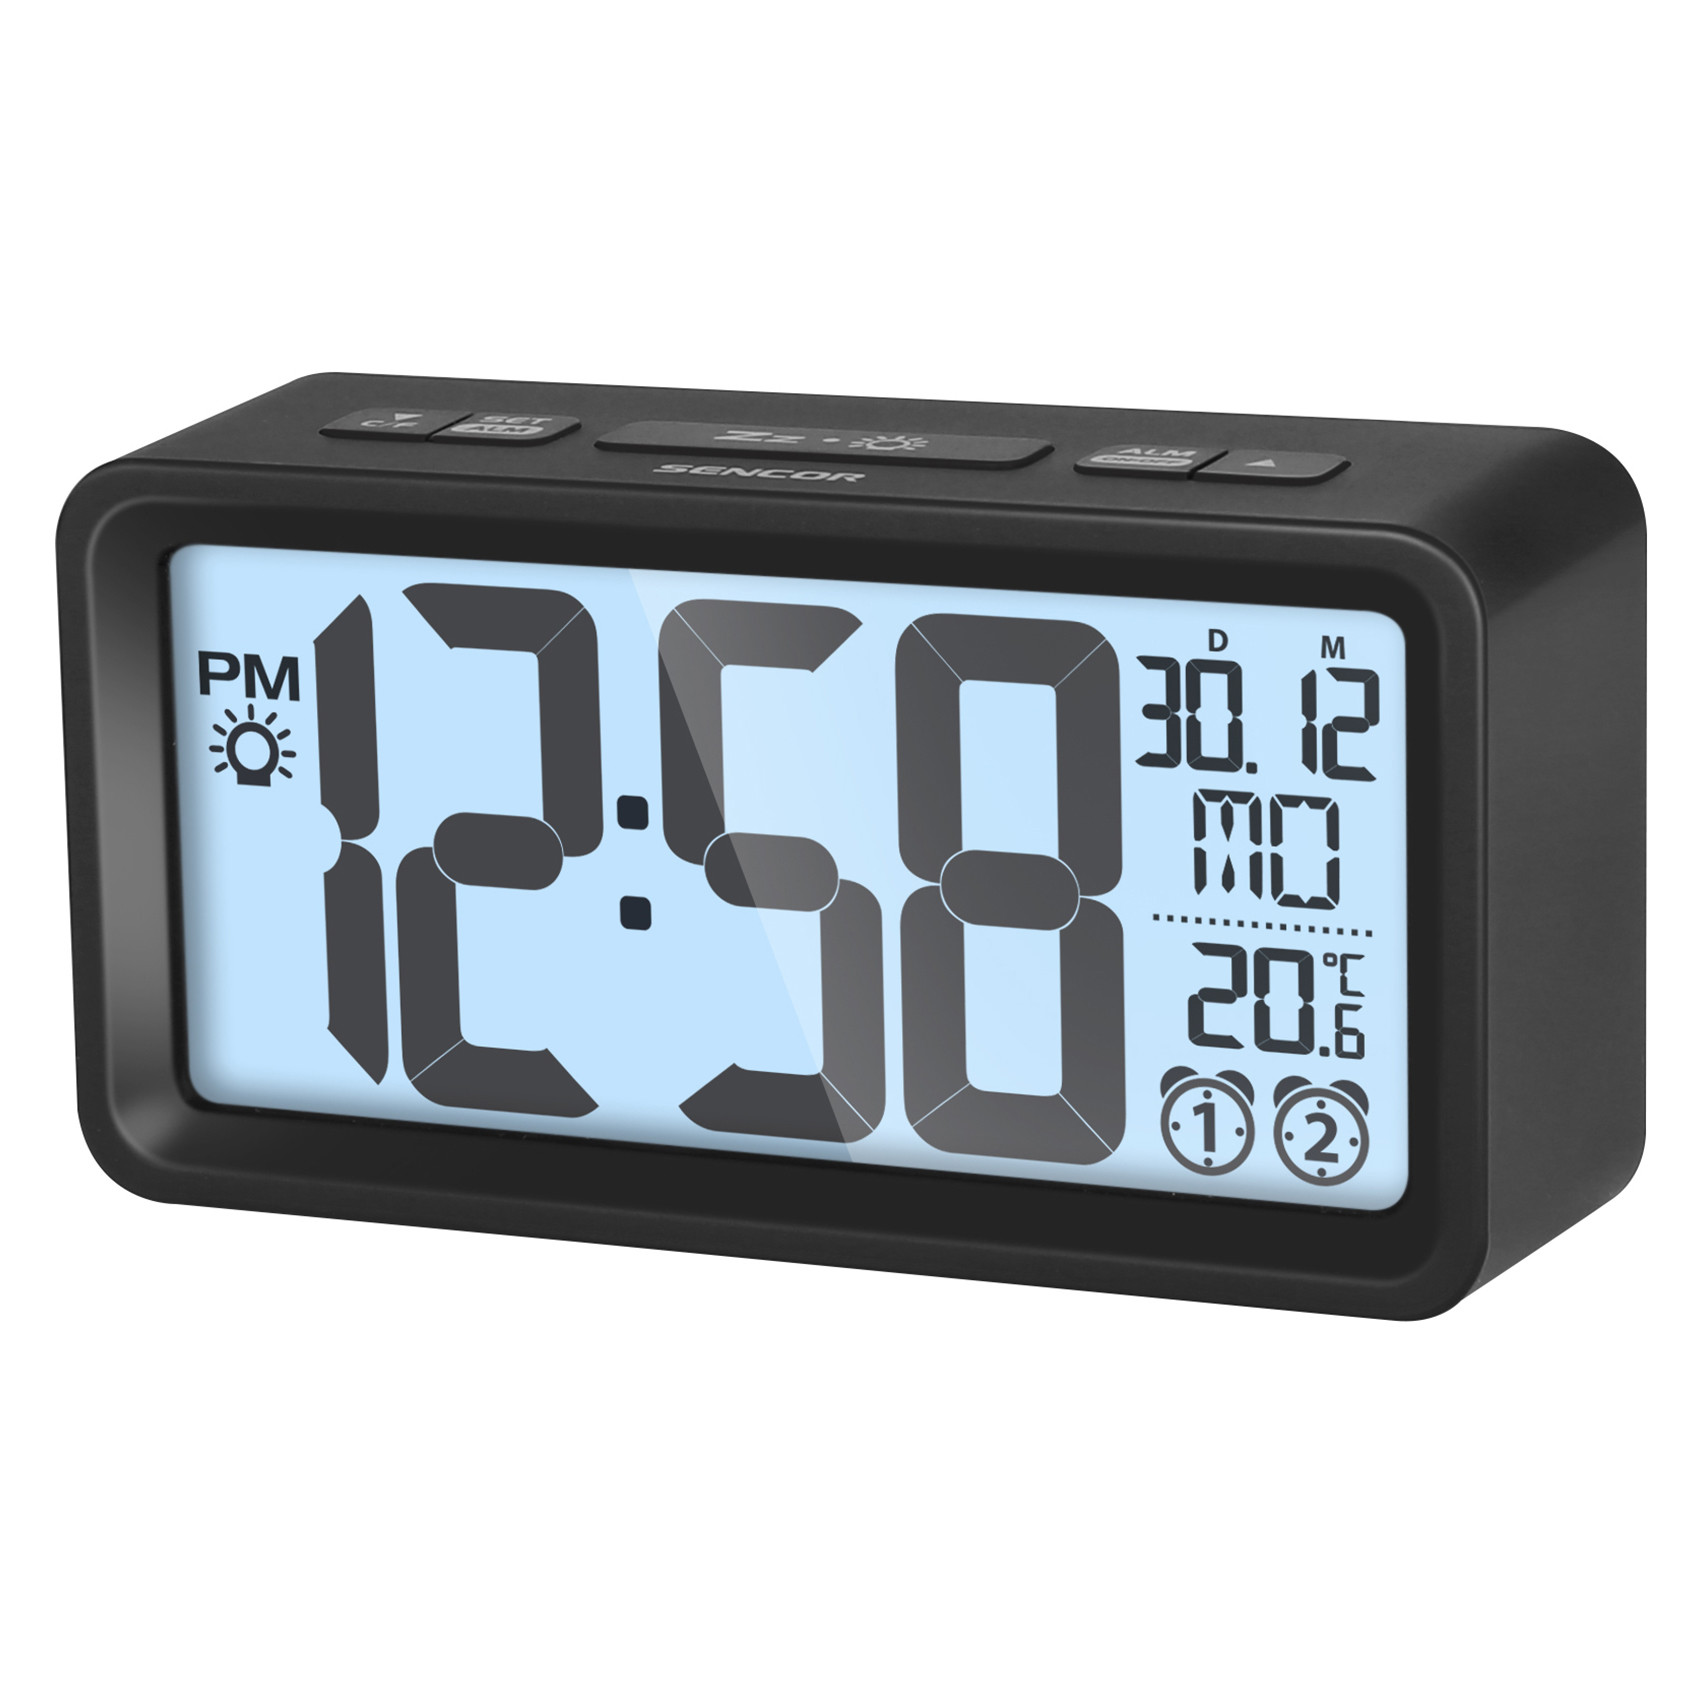 SENCOR Alarm clock with thermometer SDC 2800 black radio, radiopulksteņi